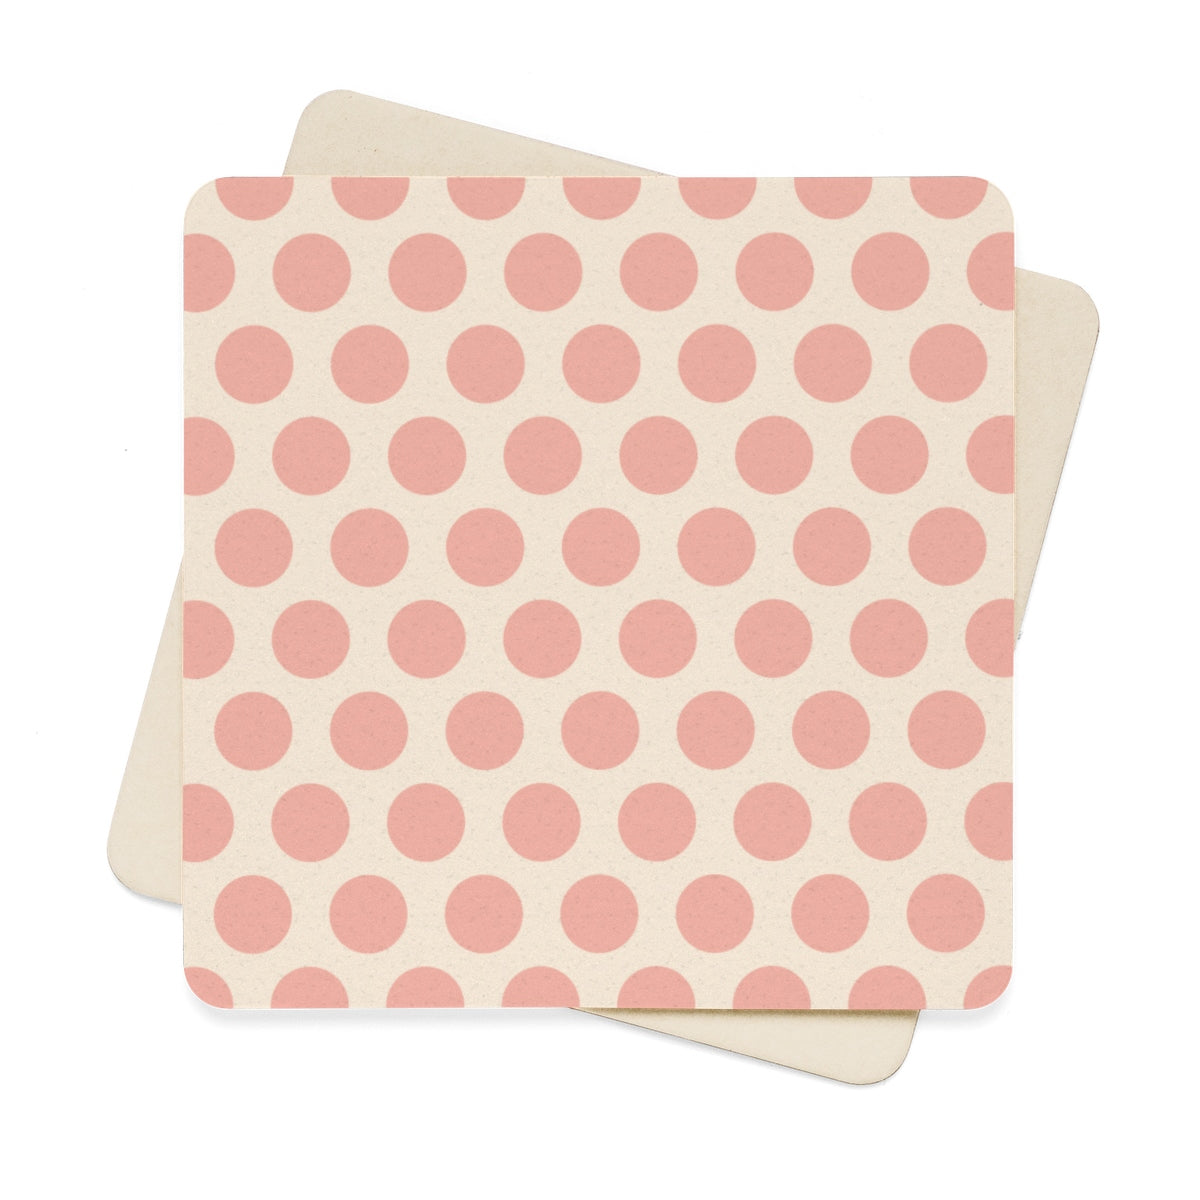 Beige and Pink Polka Dot Square Paper Coaster Set - 6pcs Home Decor - Polka Dotted All The Things Boutique